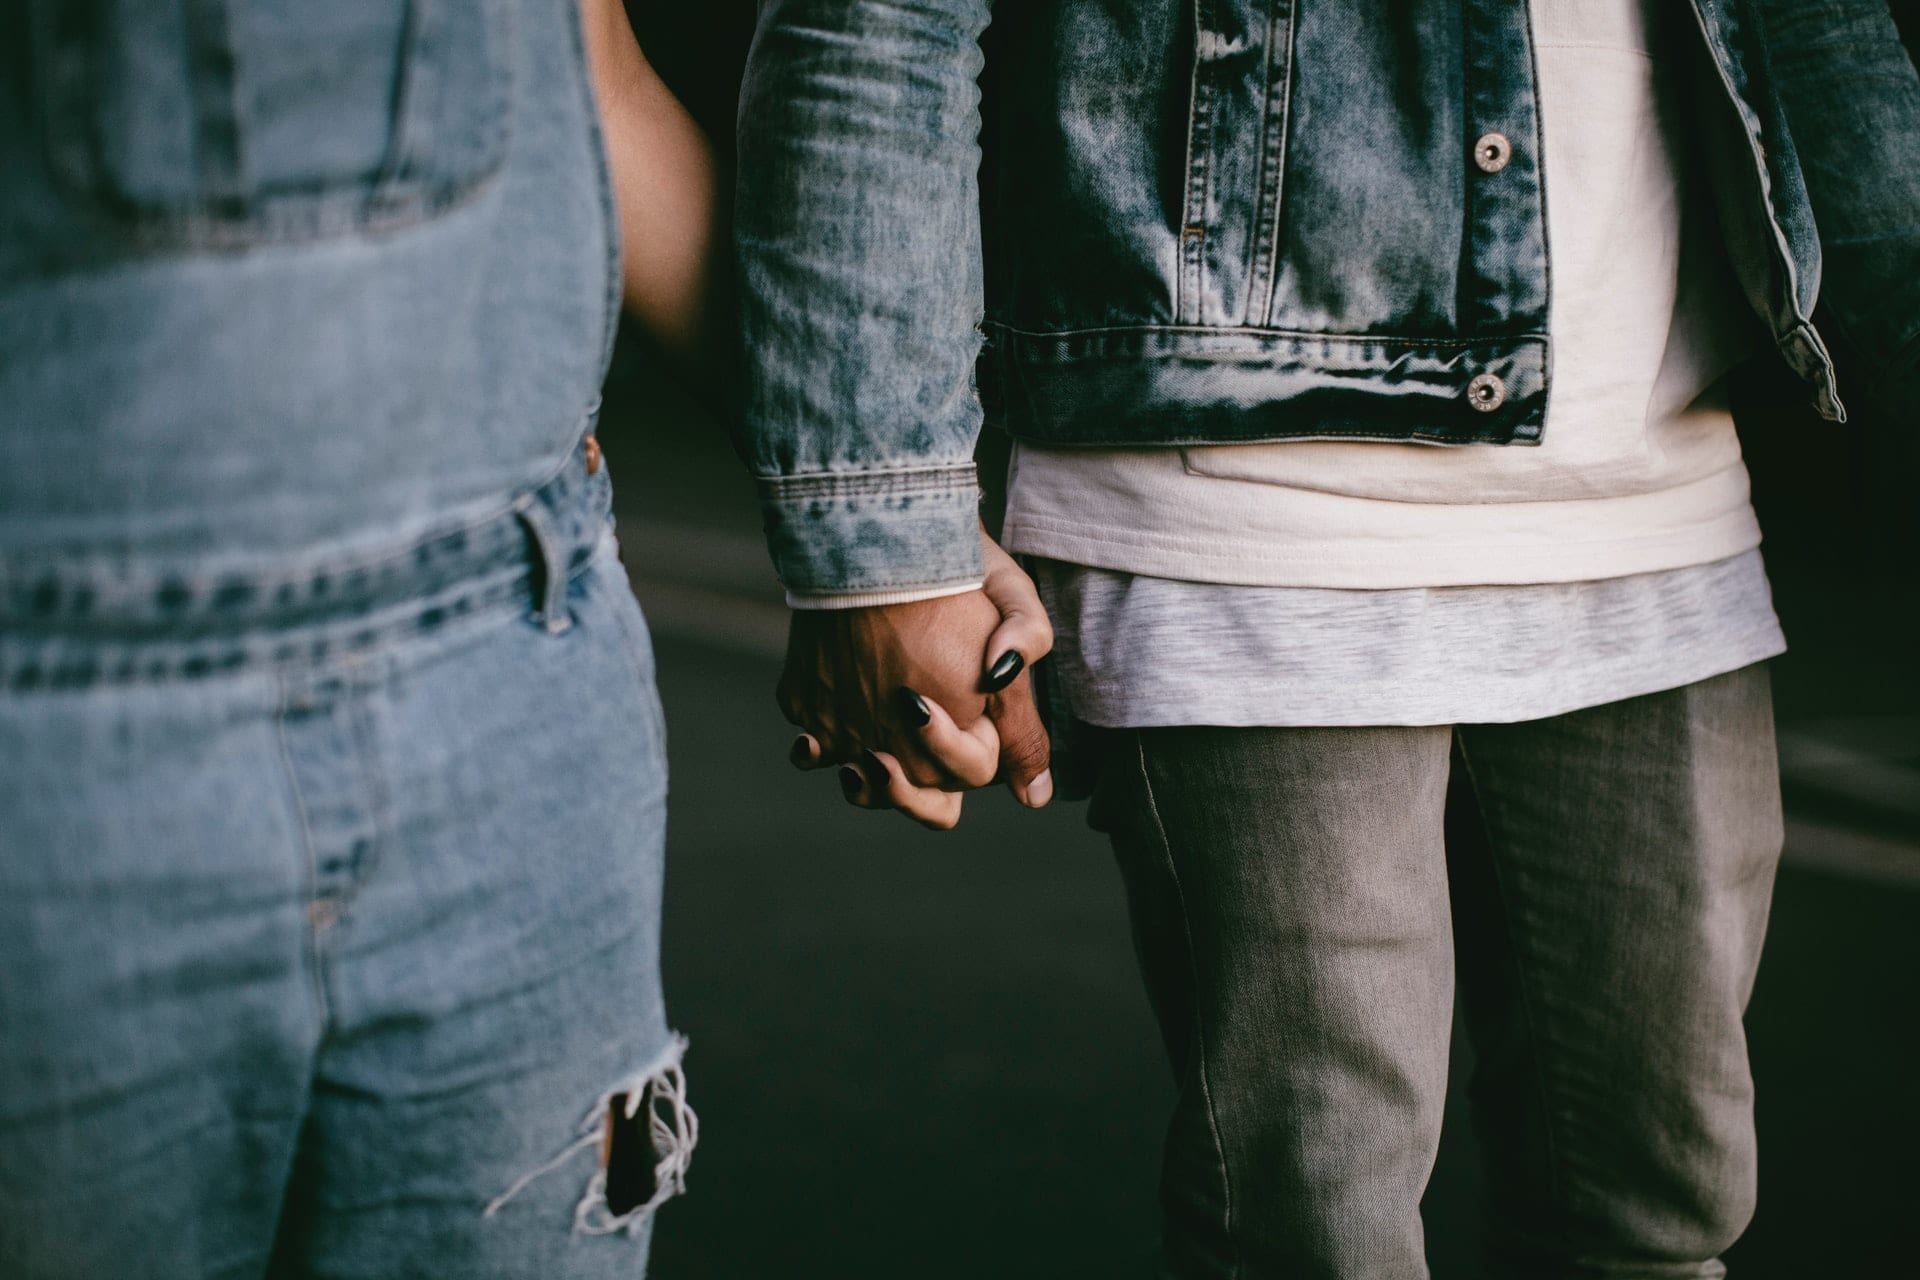 If your spouse is a criminal, your probation officer may keep you away from them.